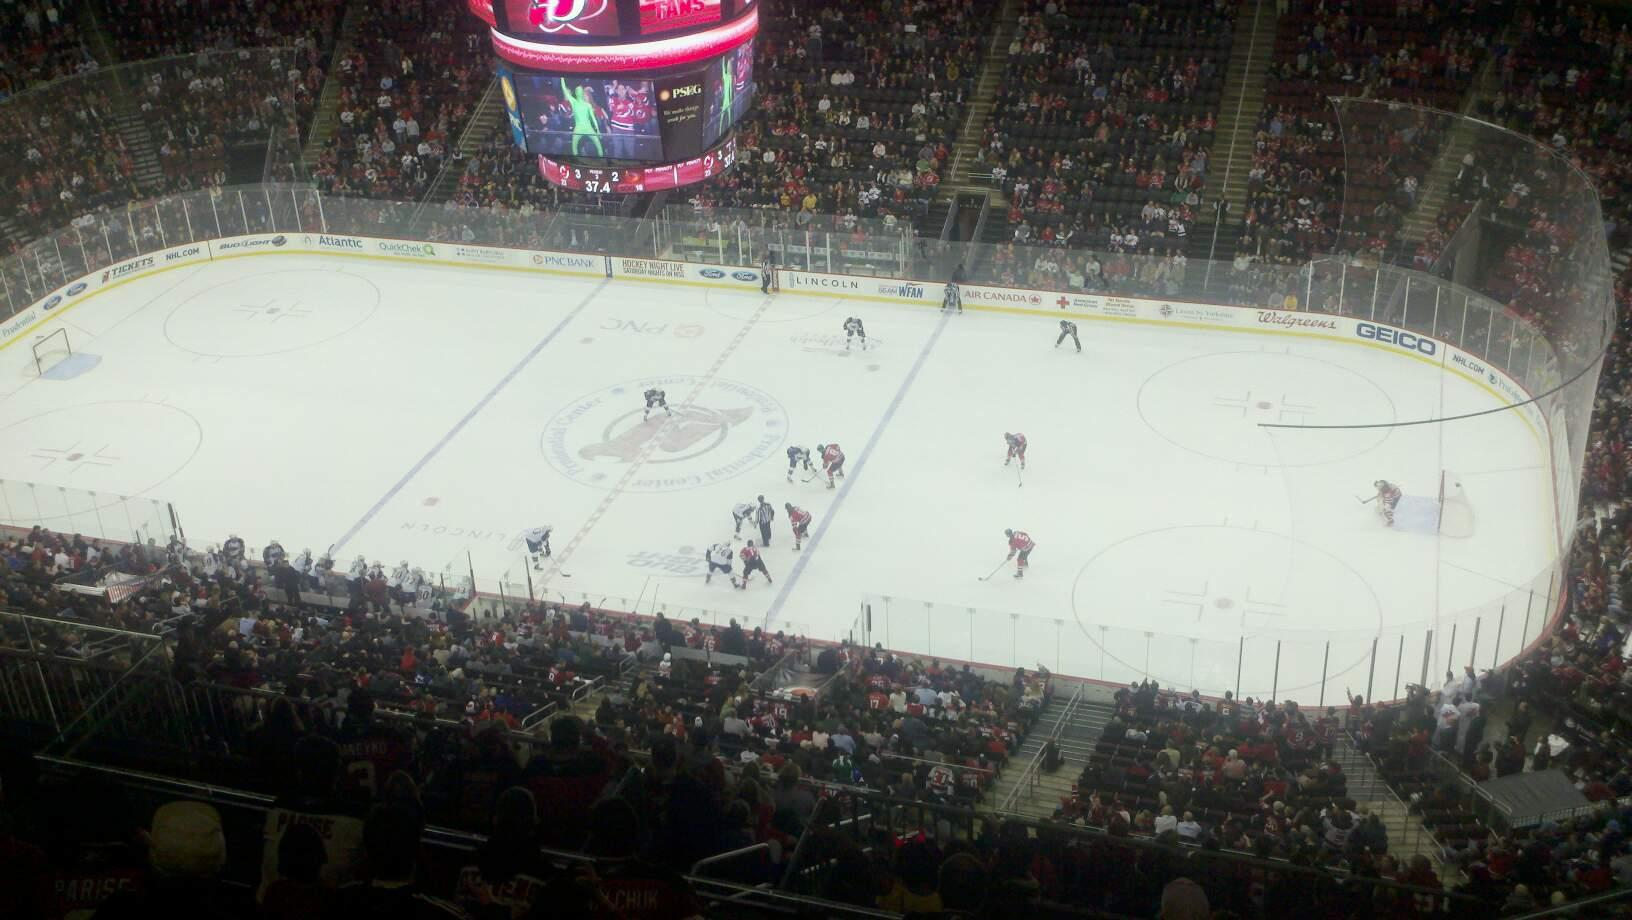 Prudential Center Section 214 Row 8 Seat 5